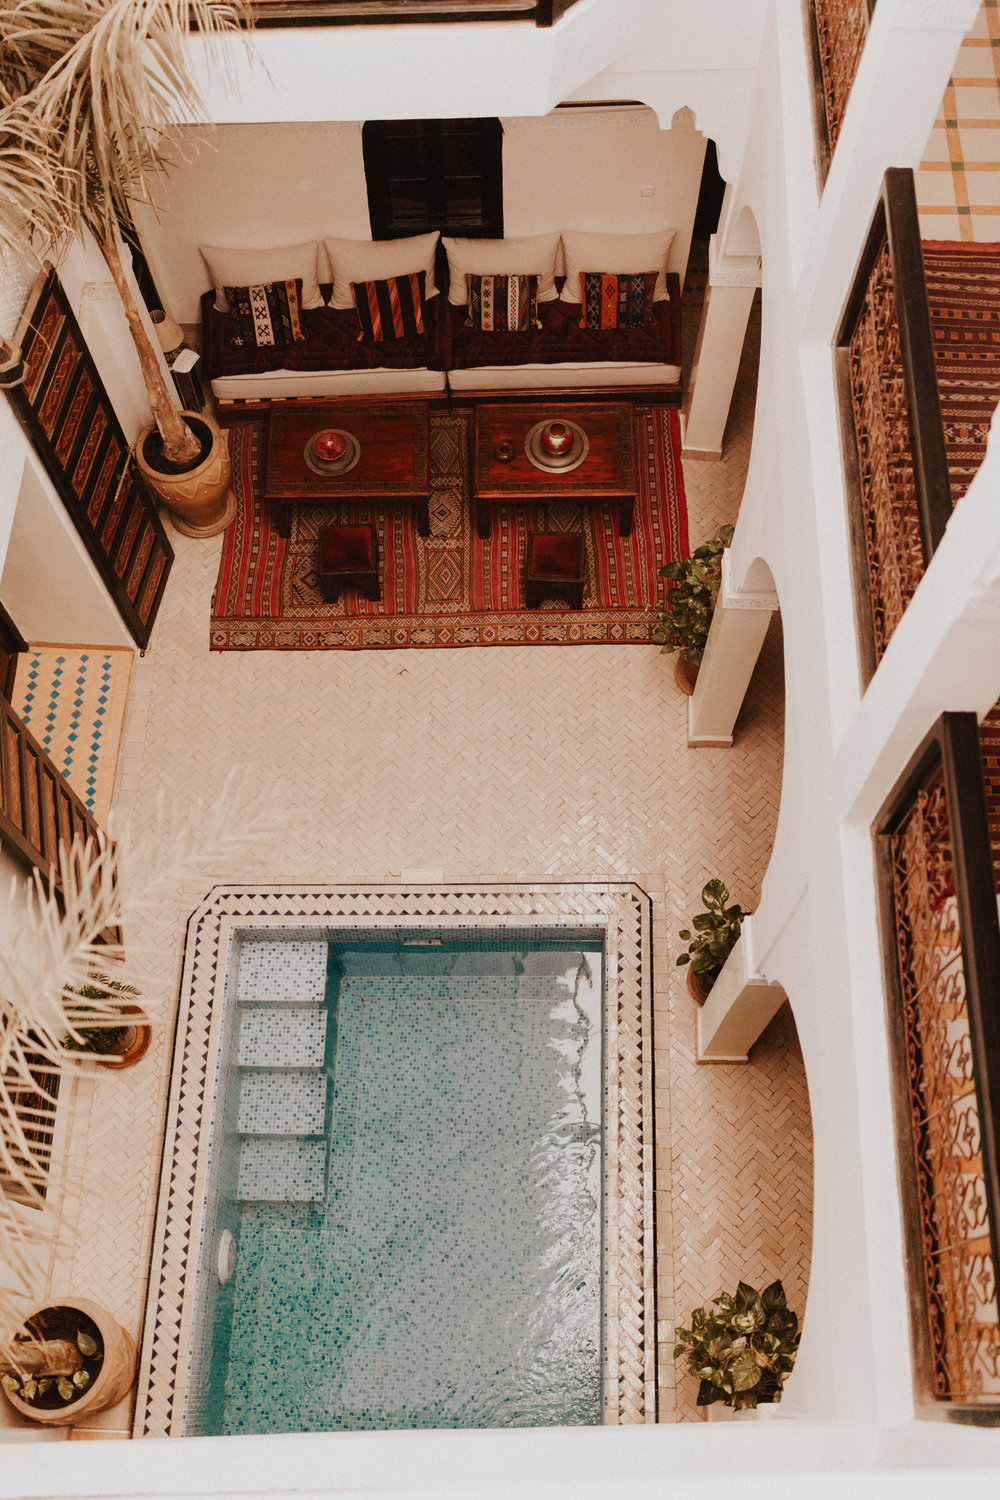 Looking down on our Riad's courtyard from the second story